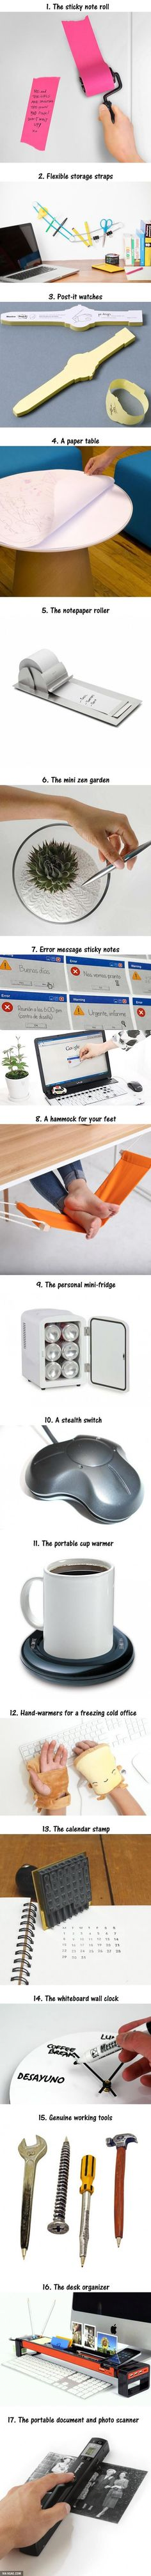 17 incredible office gadgets that will add joy to your workday - 9GAG